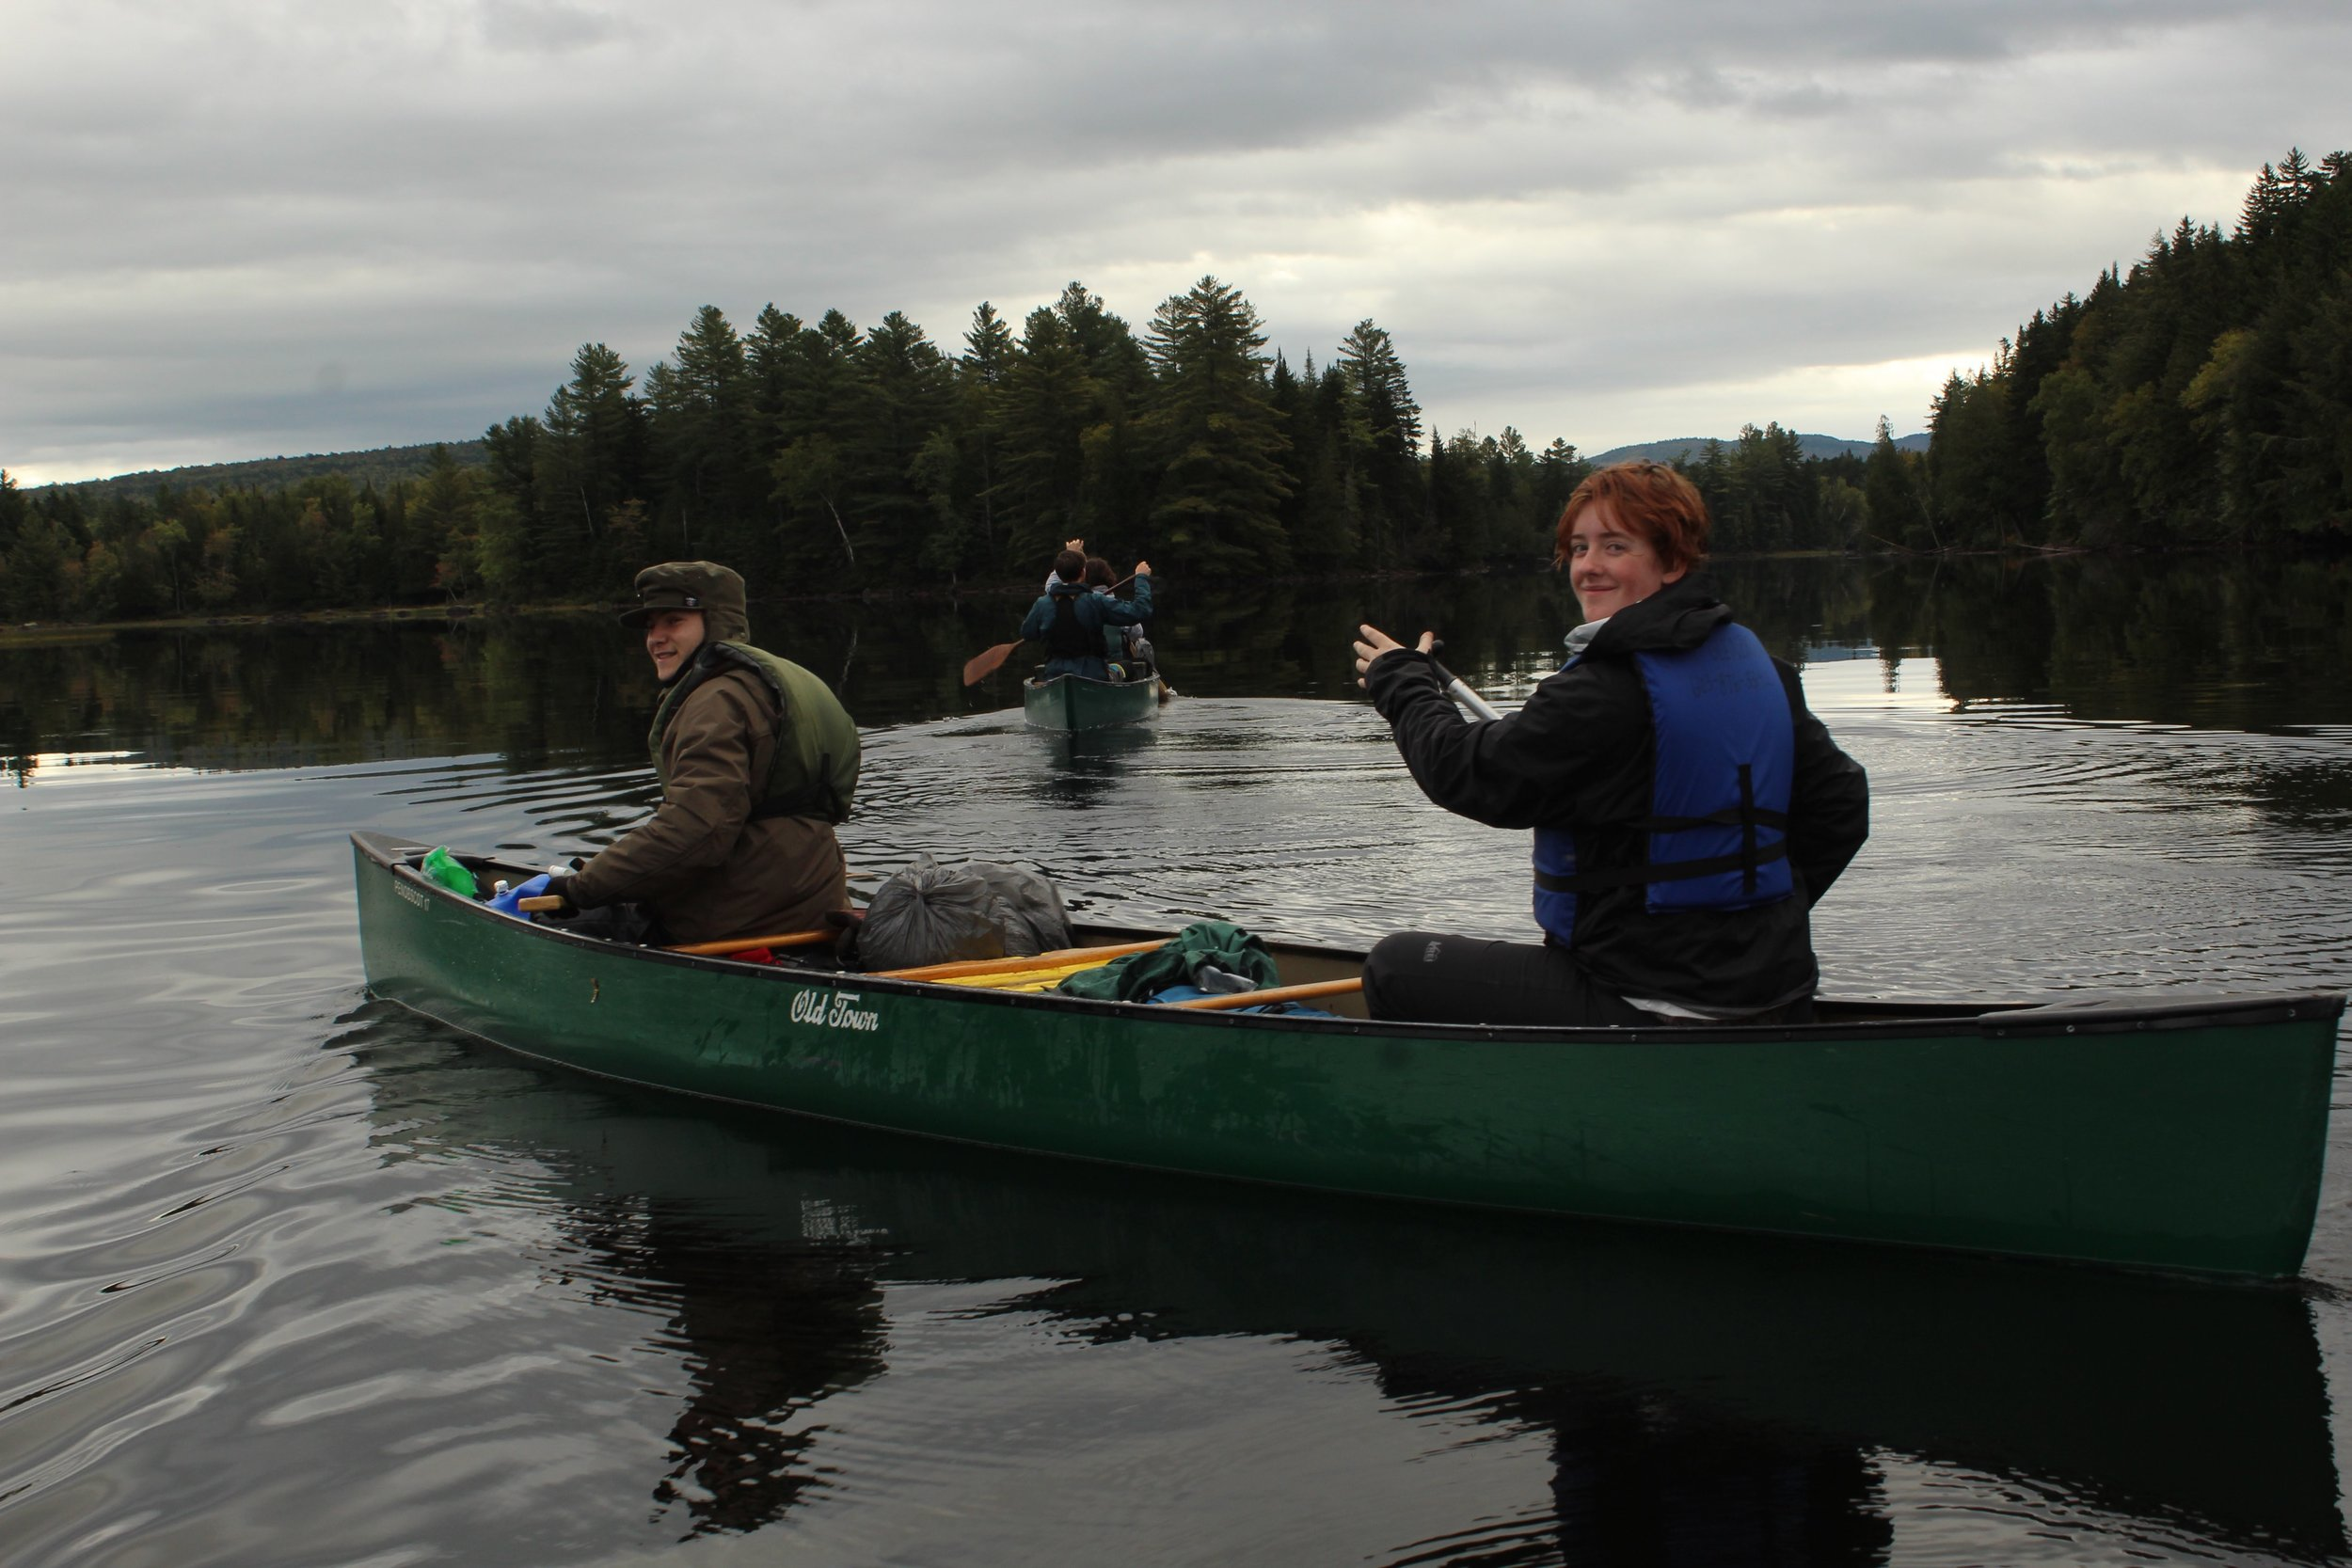 Paddling on Umbagog Lake, on the New Hampshire side before crossing into Maine.